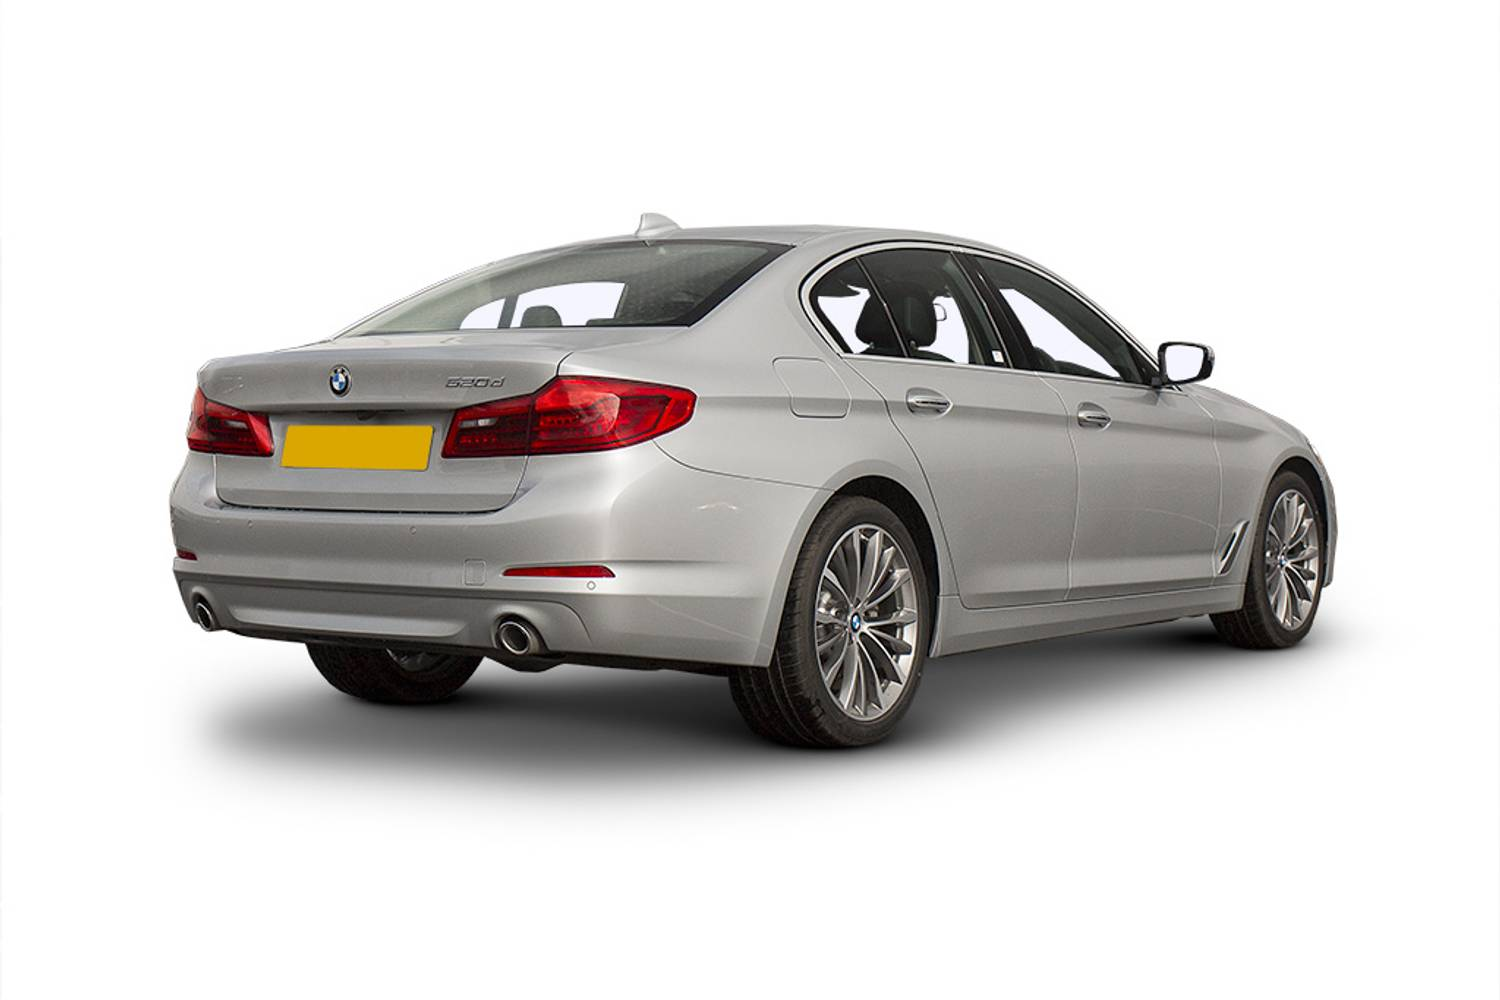 BMW 5 Series Saloon 4dr Auto Rear Three Quarter